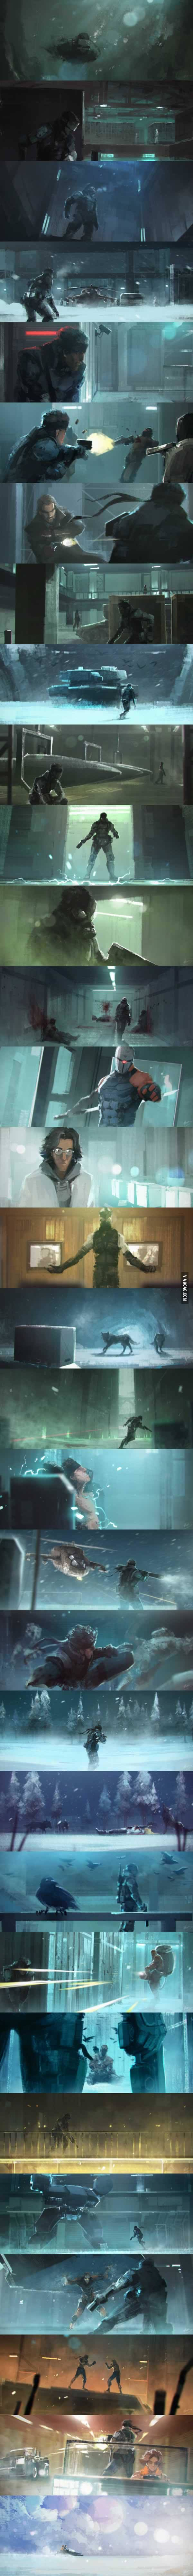 Metal Gear Solid. An Amazing Story Told With Amazing Art